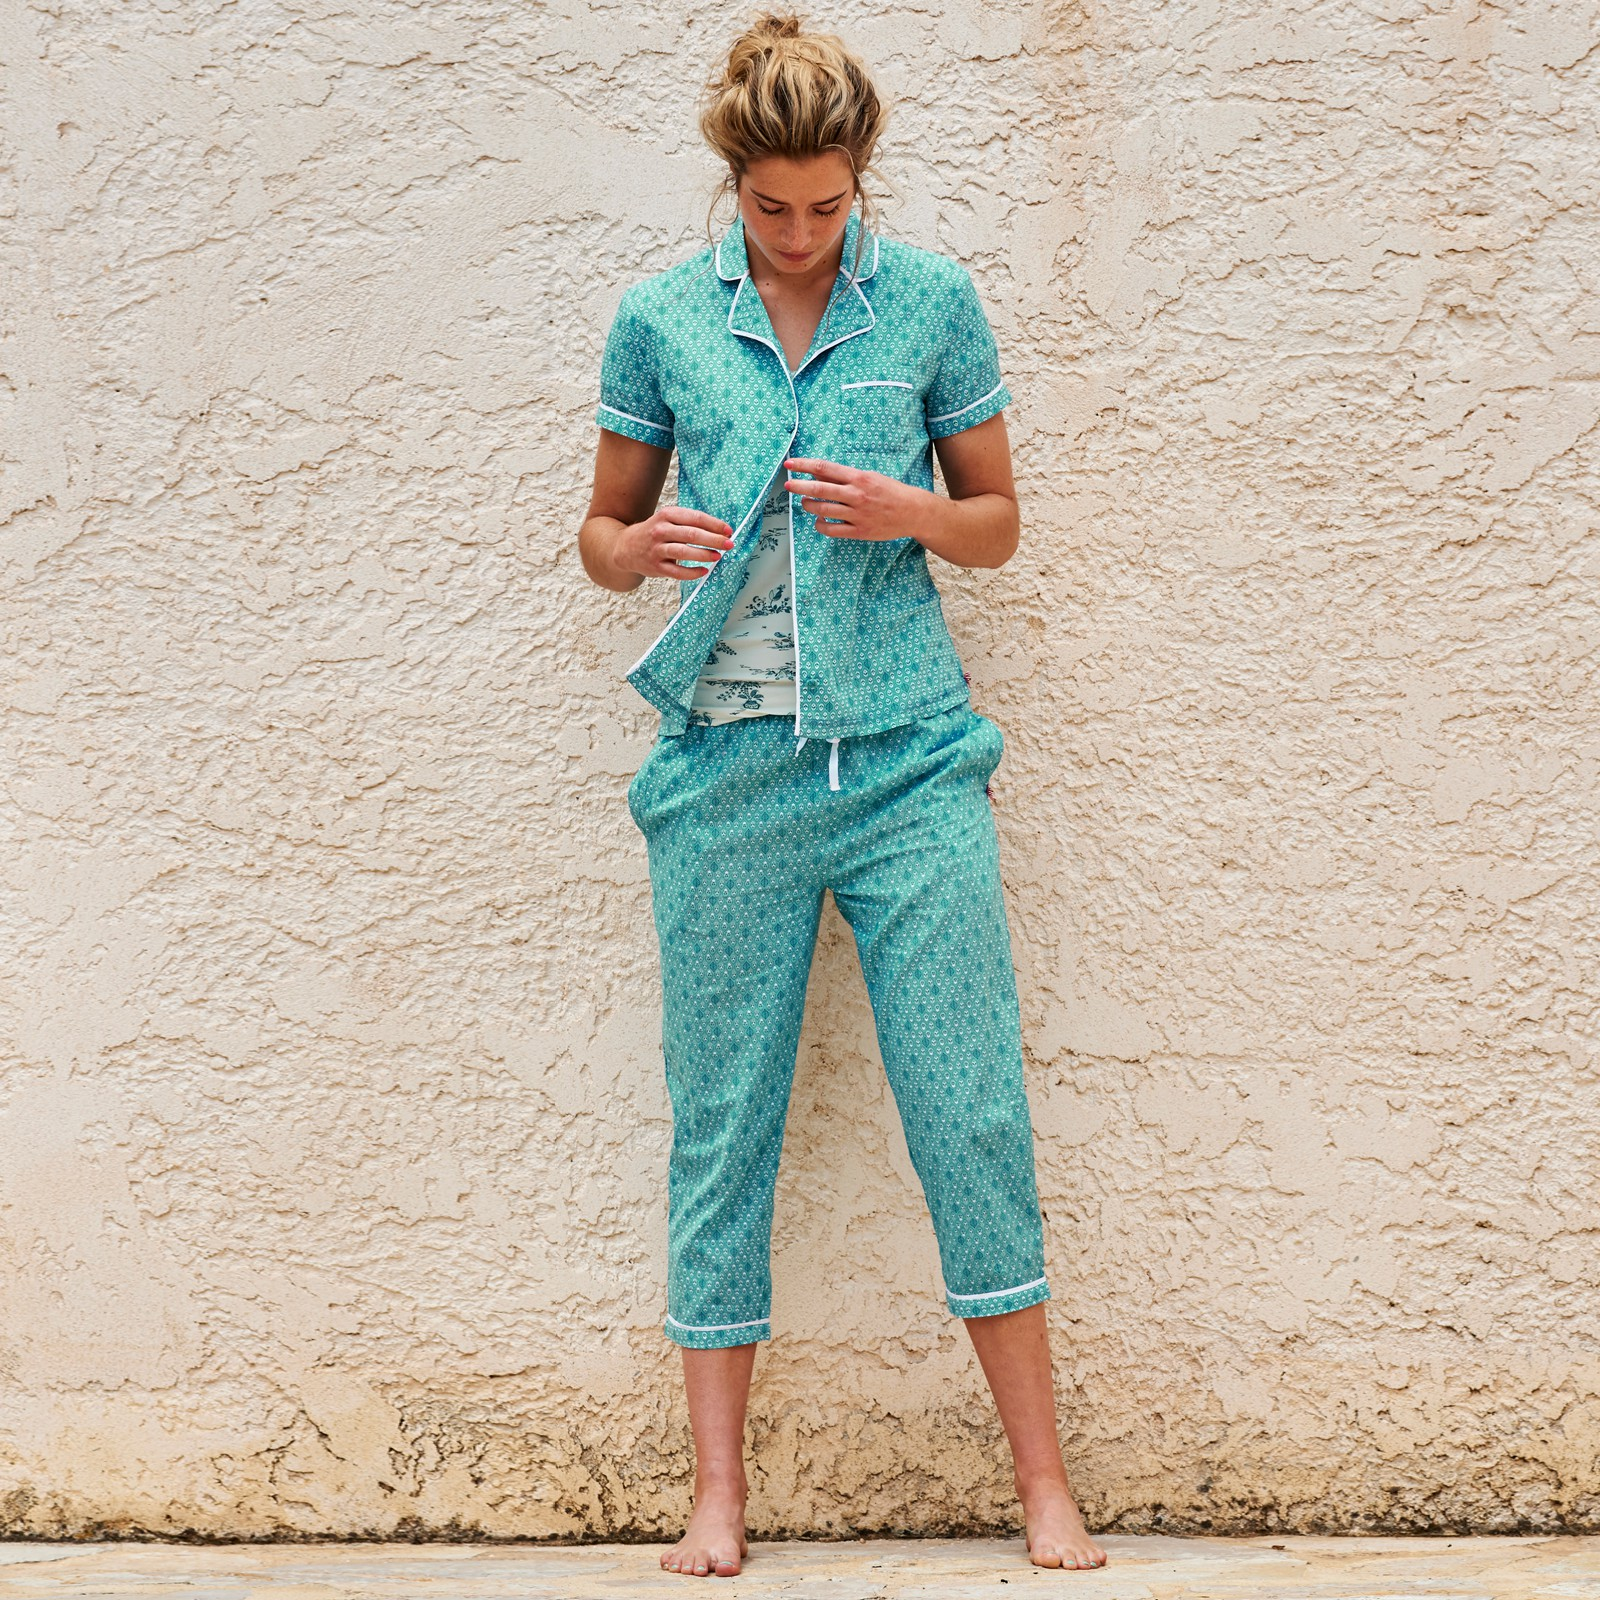 PiP Studio Damen Pyjamahose 3/4 Pants Baukje Leaves S M L XL 260541 in aqua